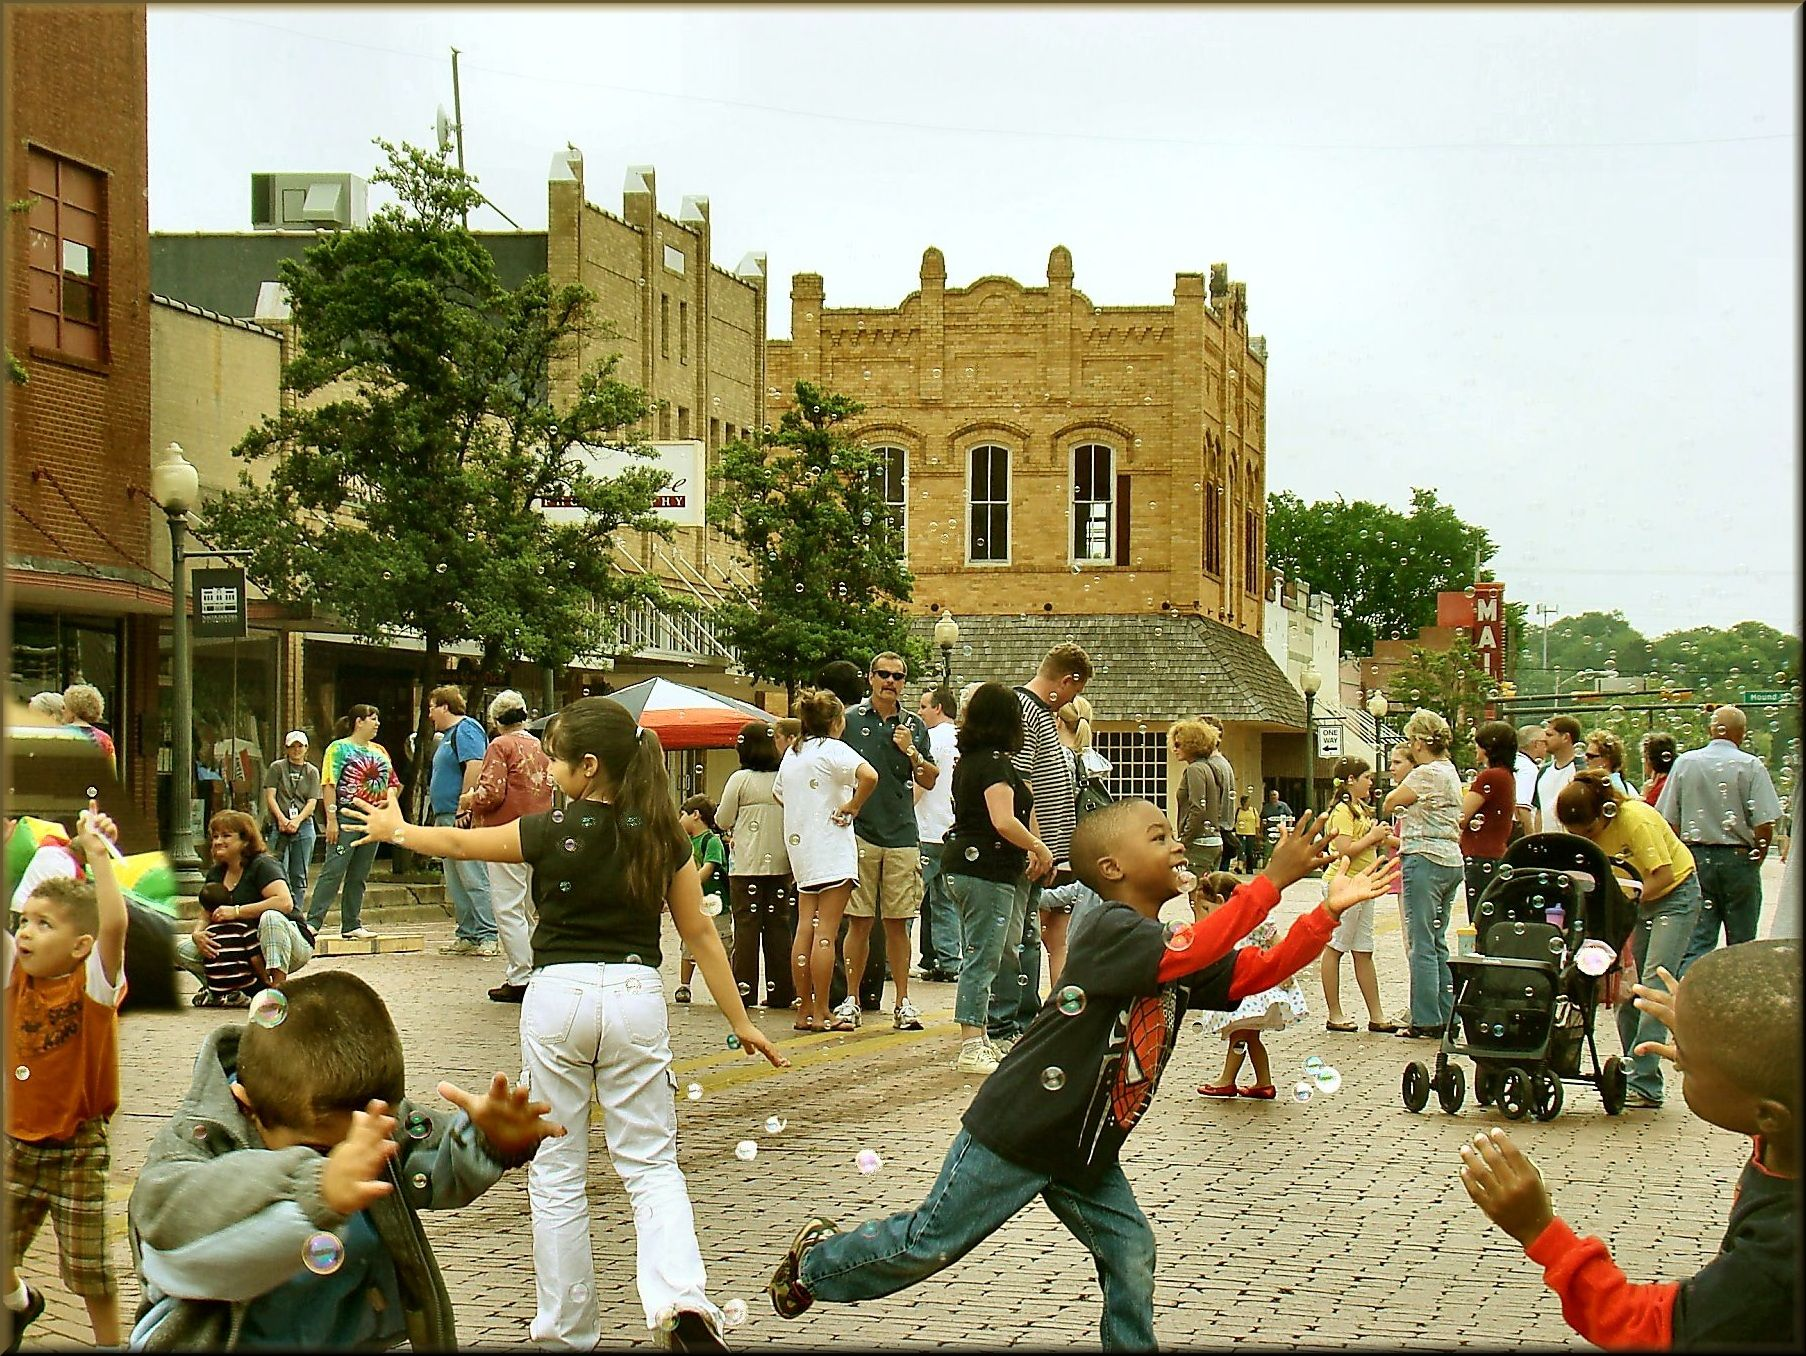 Chasing bubbles at the multicultural festival in historic